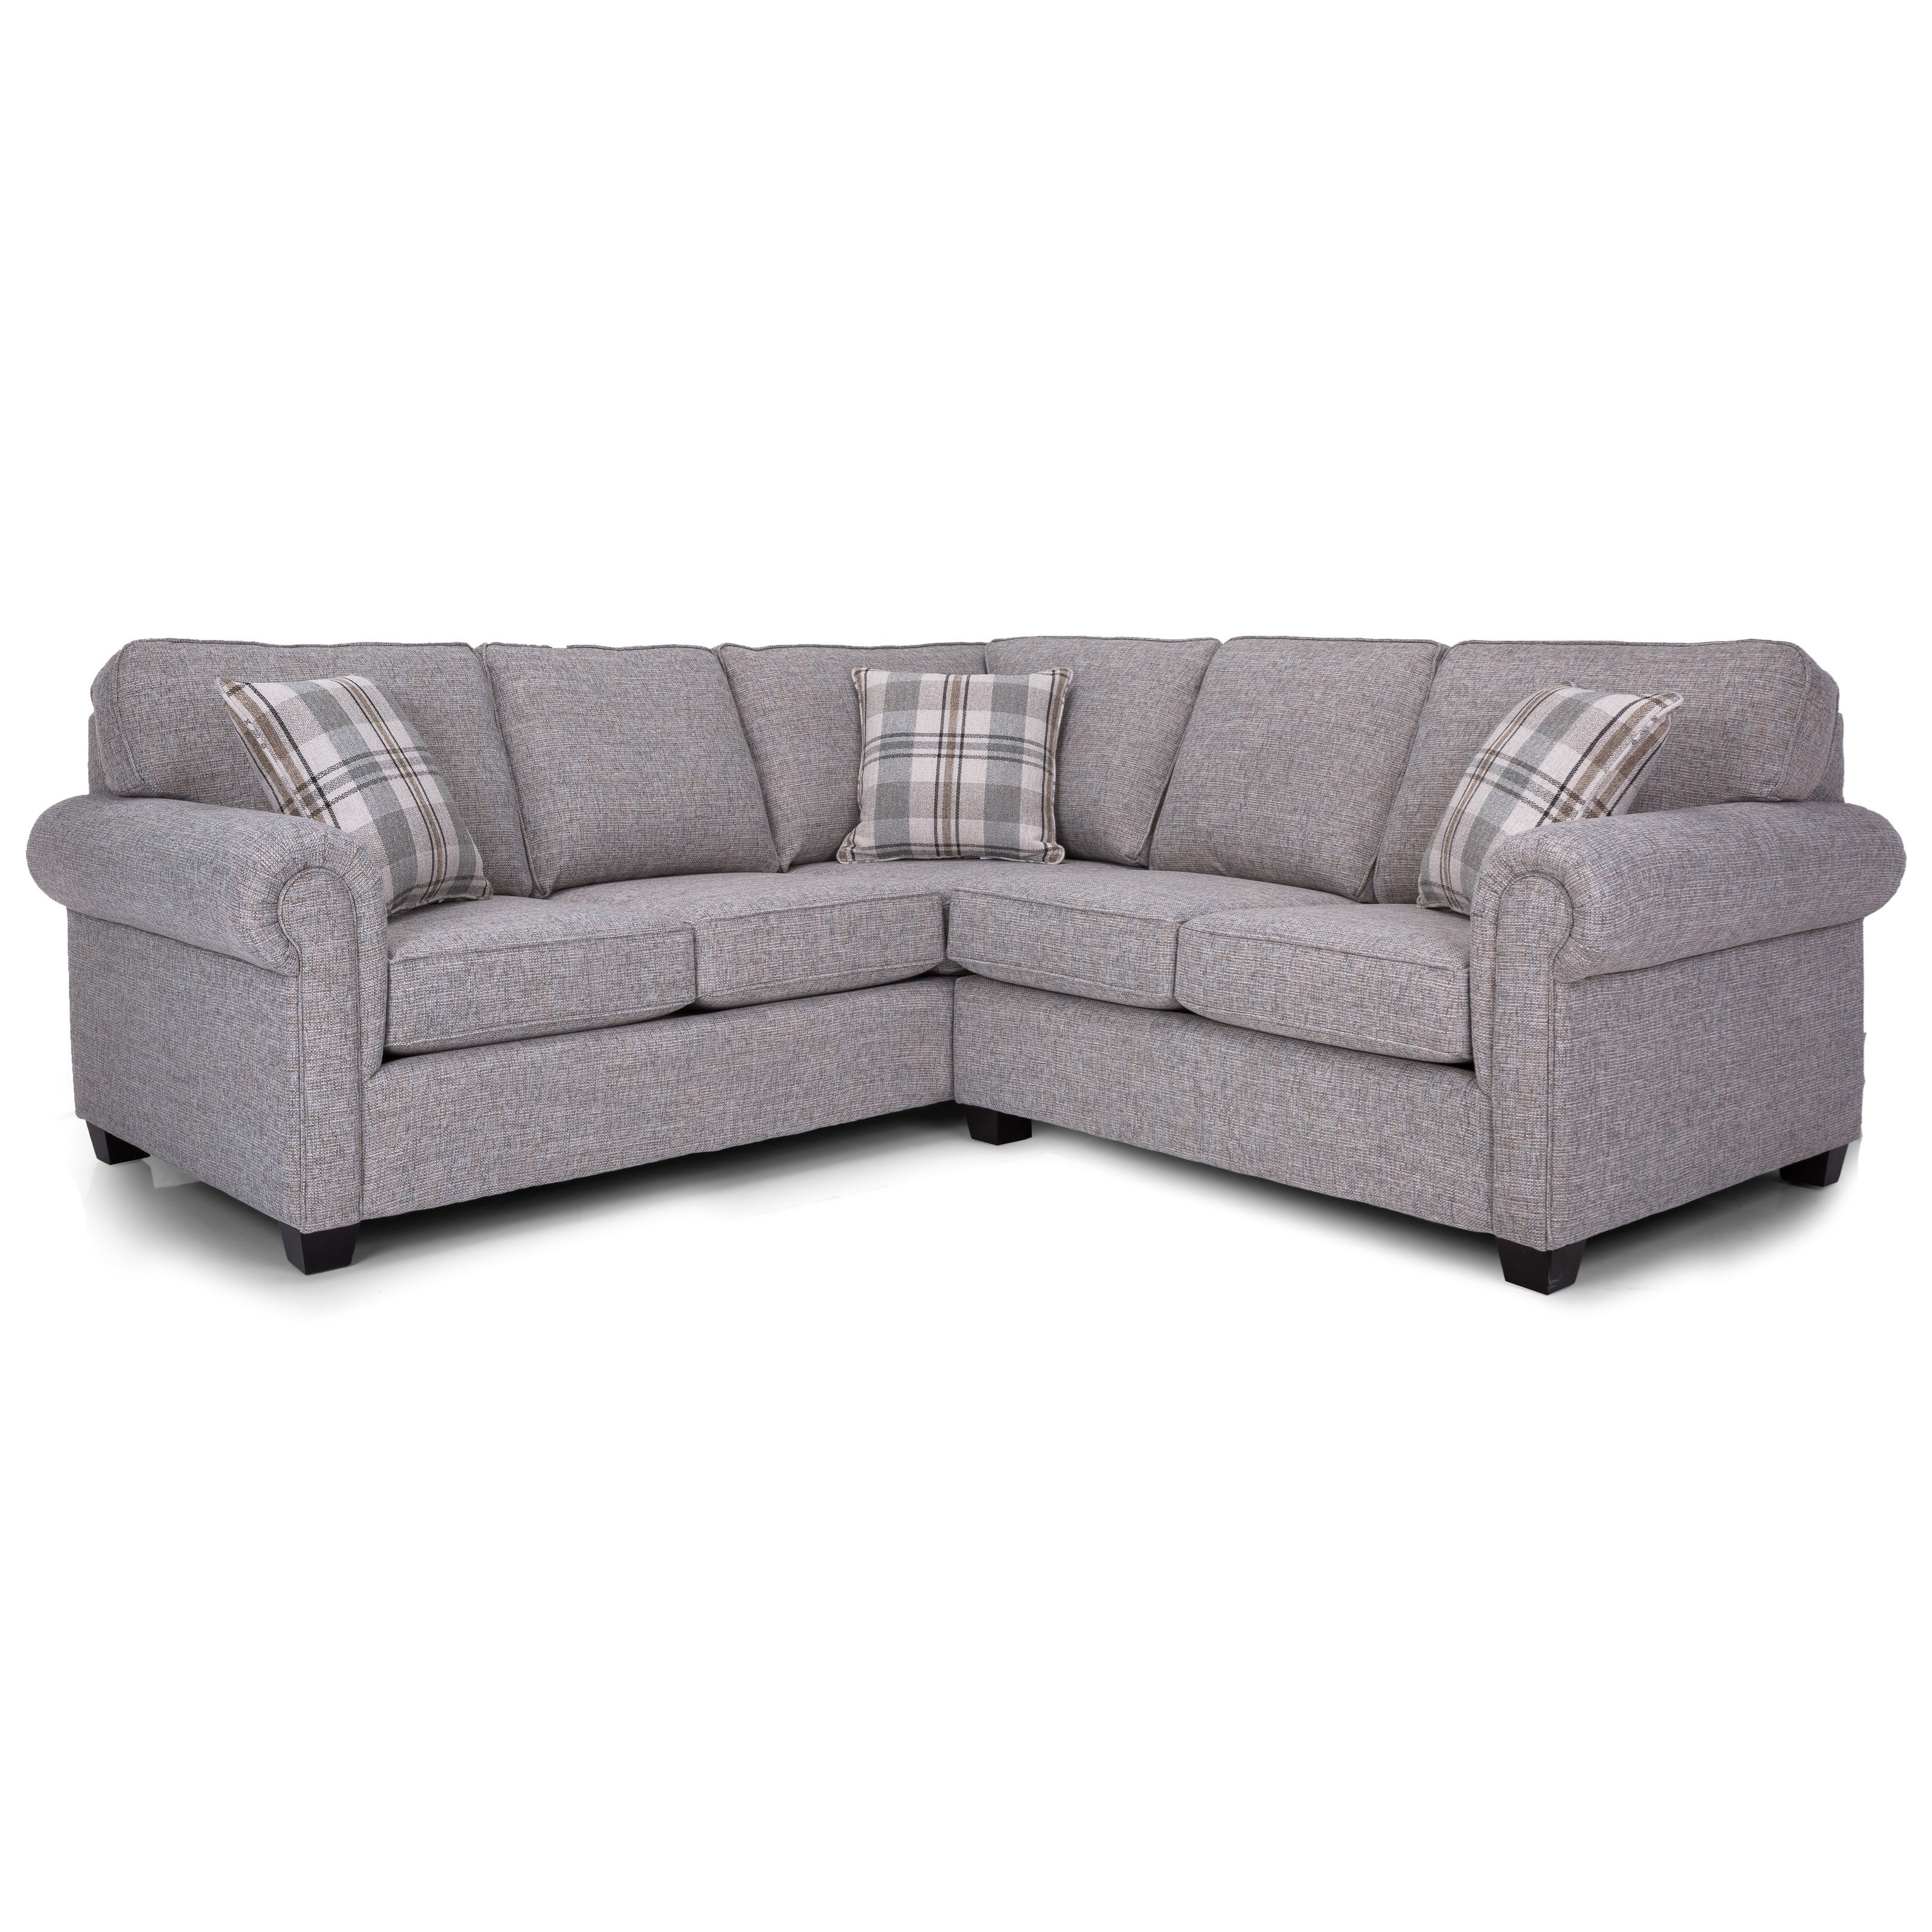 2006 Sectional Series L-Shaped Sectional by Decor-Rest at Rooms for Less